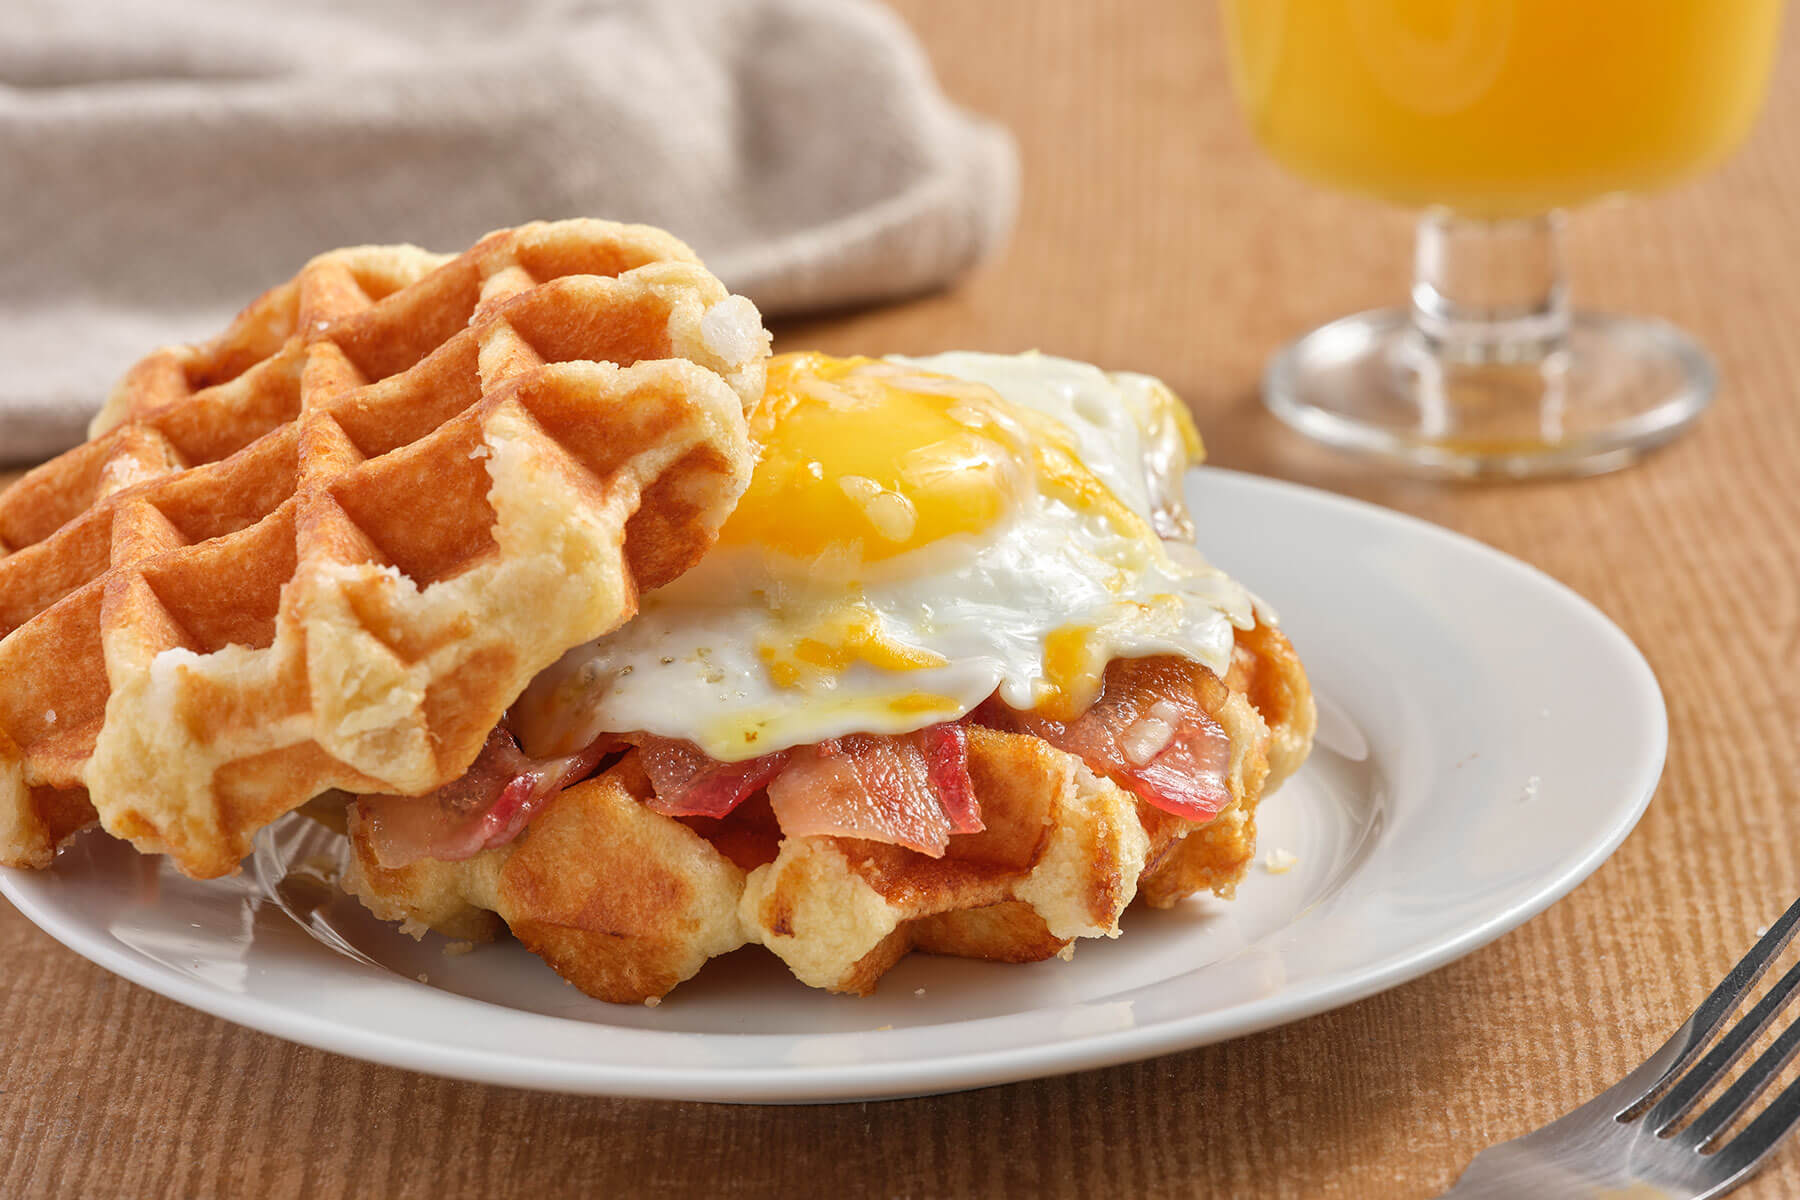 fried egg on top of a waffle